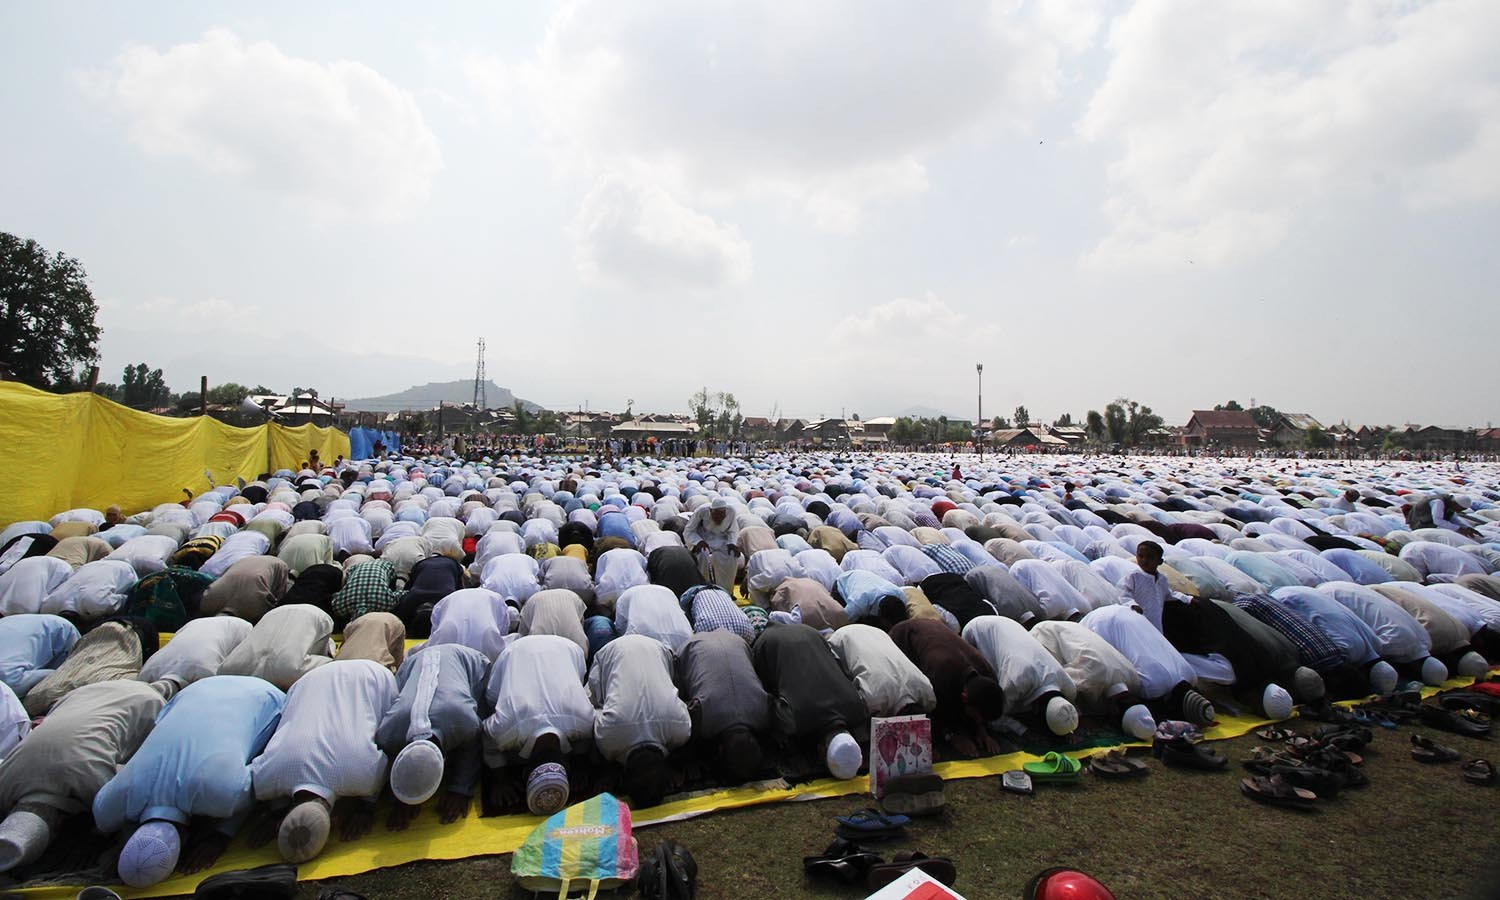 Kashmiris offer Eidul Fitr prayers in Srinagar, India-held Kashmir. — Faisal Khan